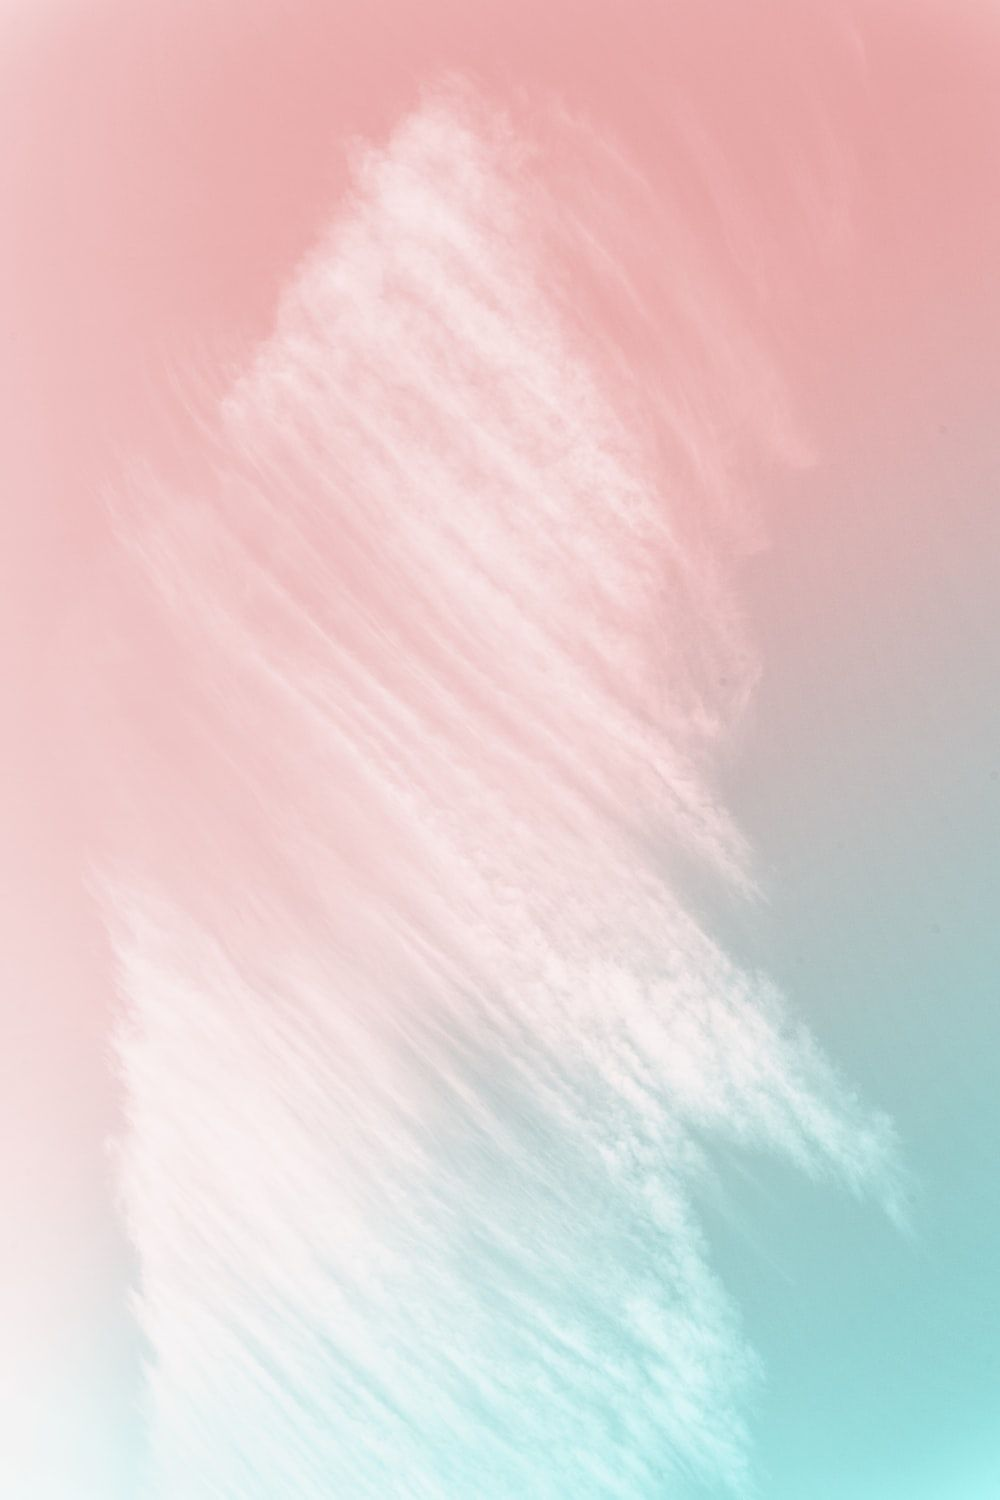 Pastel Wallpapers: Free HD Download [500+ HQ]